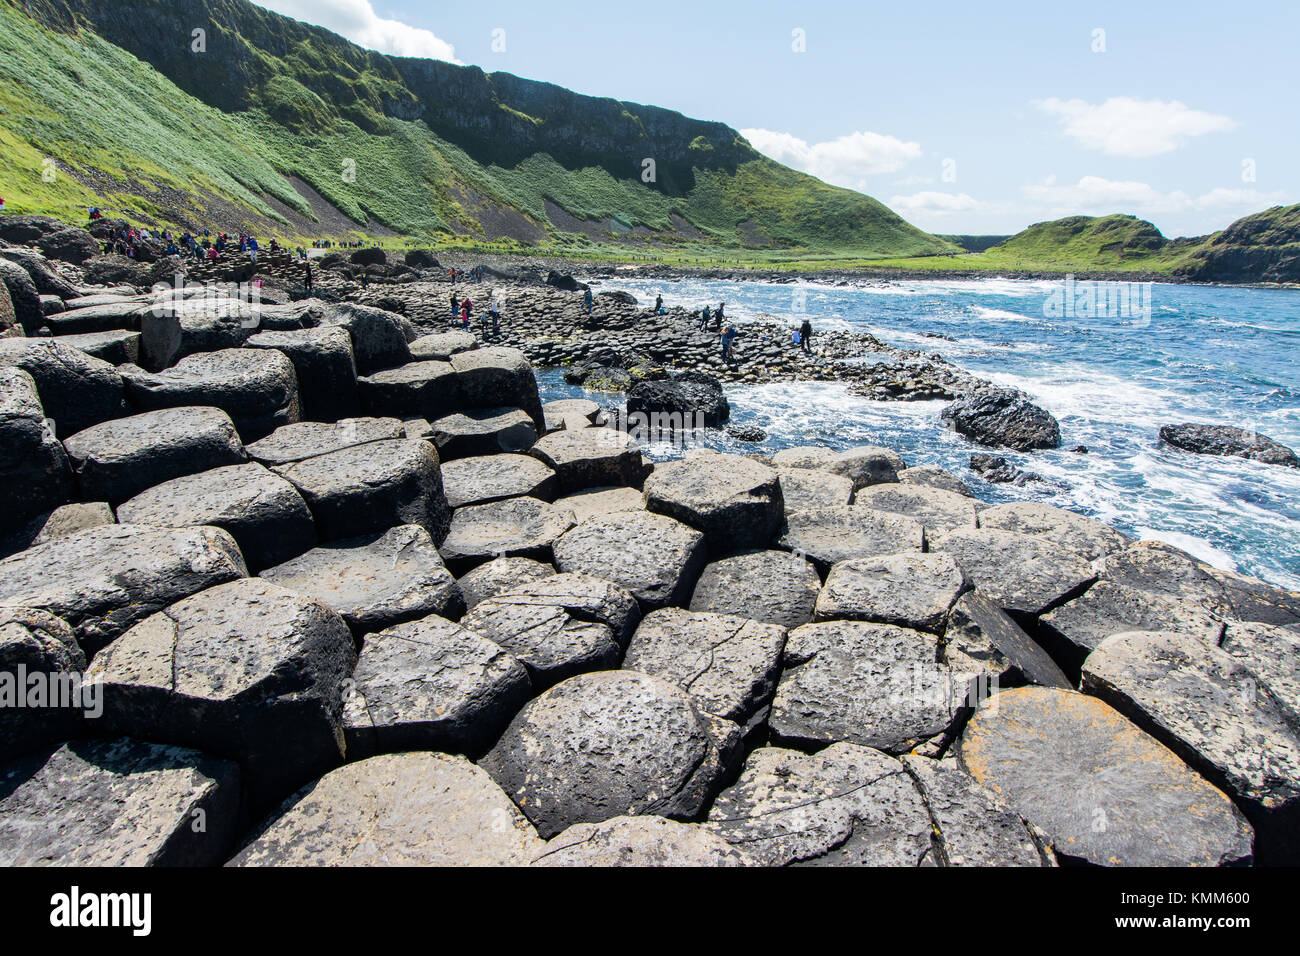 Landscapes of Northern Ireland. Giant's Causeway - Stock Image